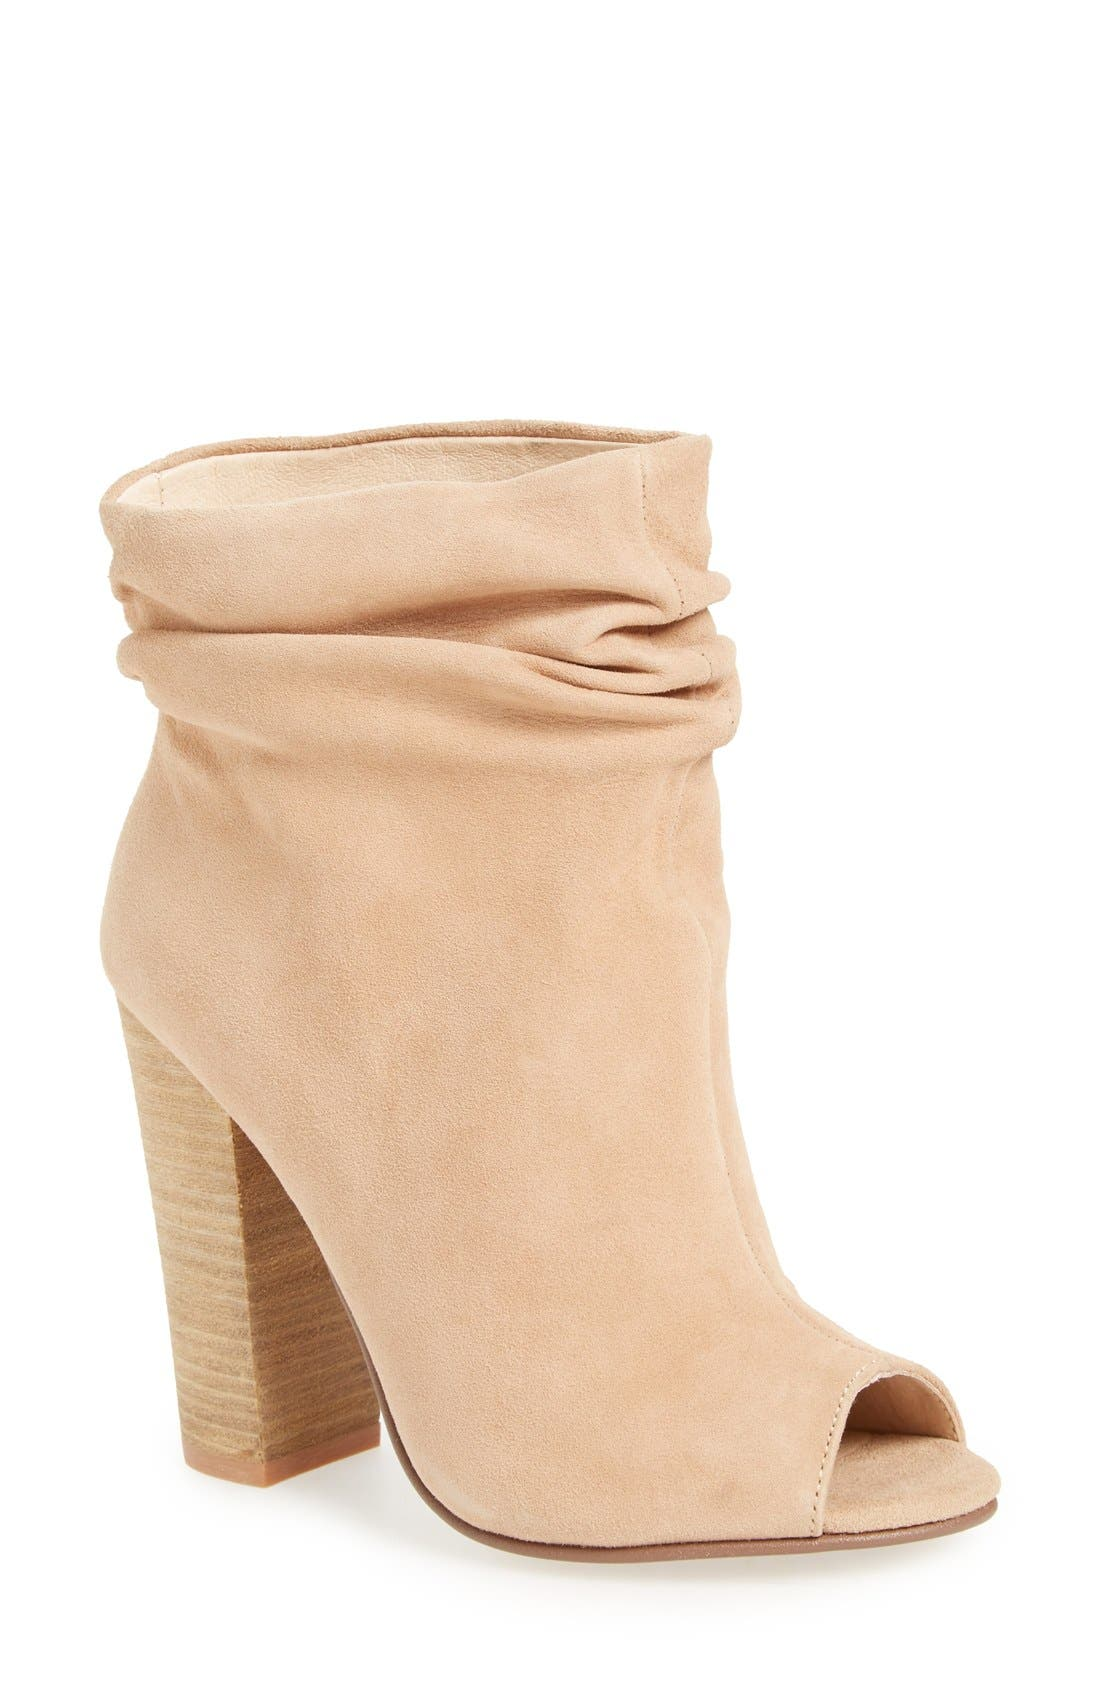 'Laurel' Peep Toe Bootie,                         Main,                         color, New Nude